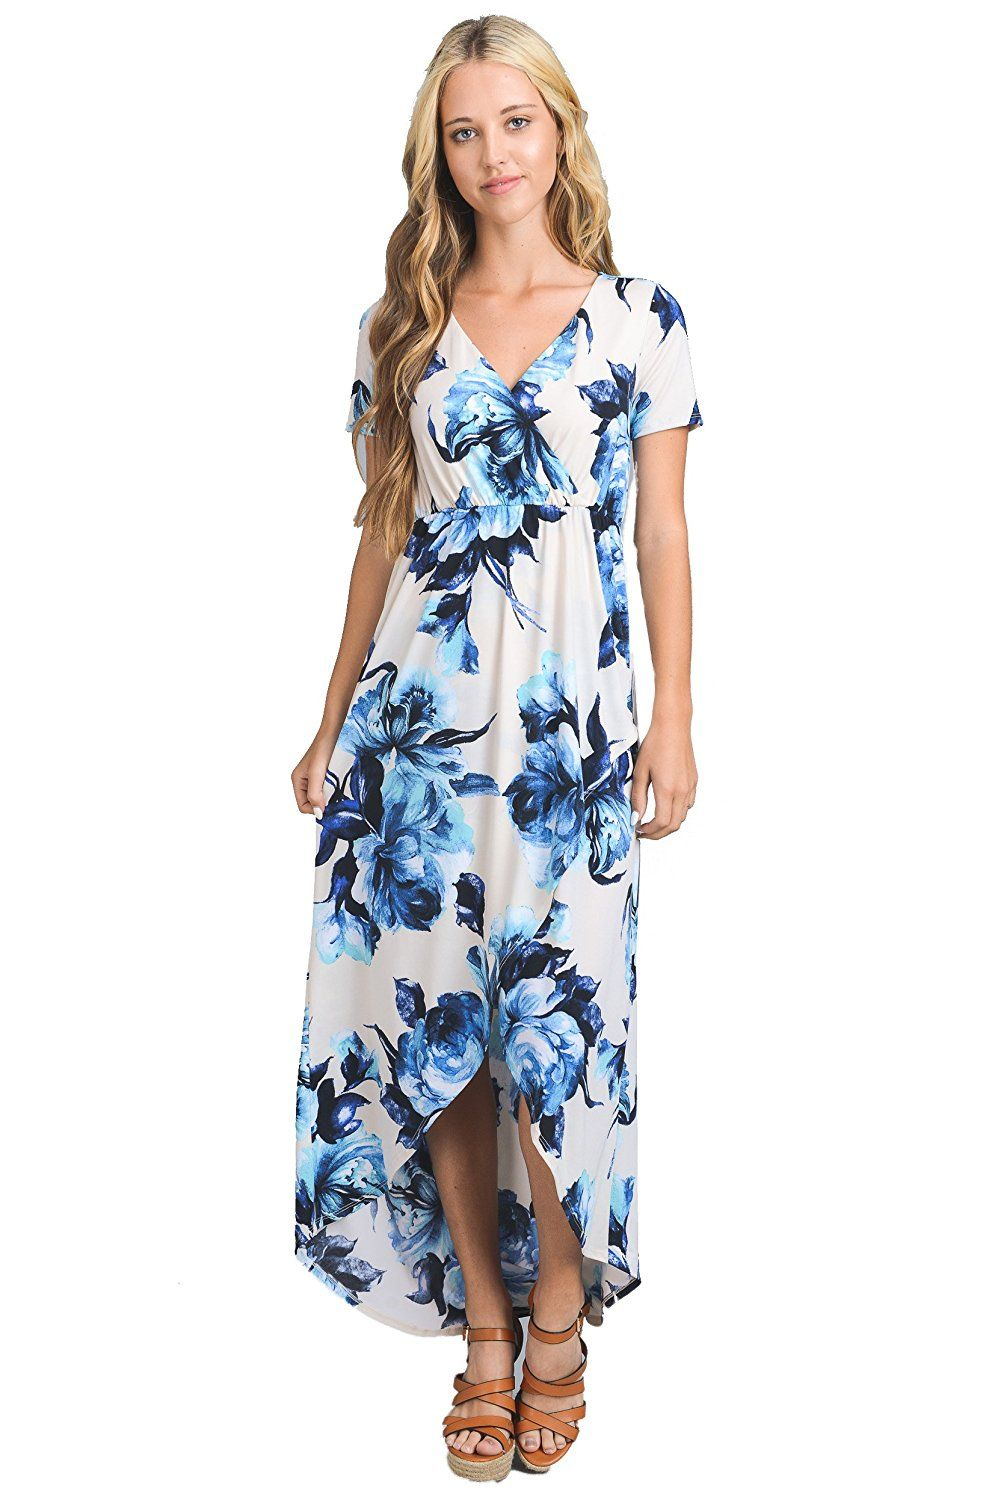 c1a28ce7bf9e Vanilla Bay Vintage Floral Print Maxi Dress | Best of Fashion ...